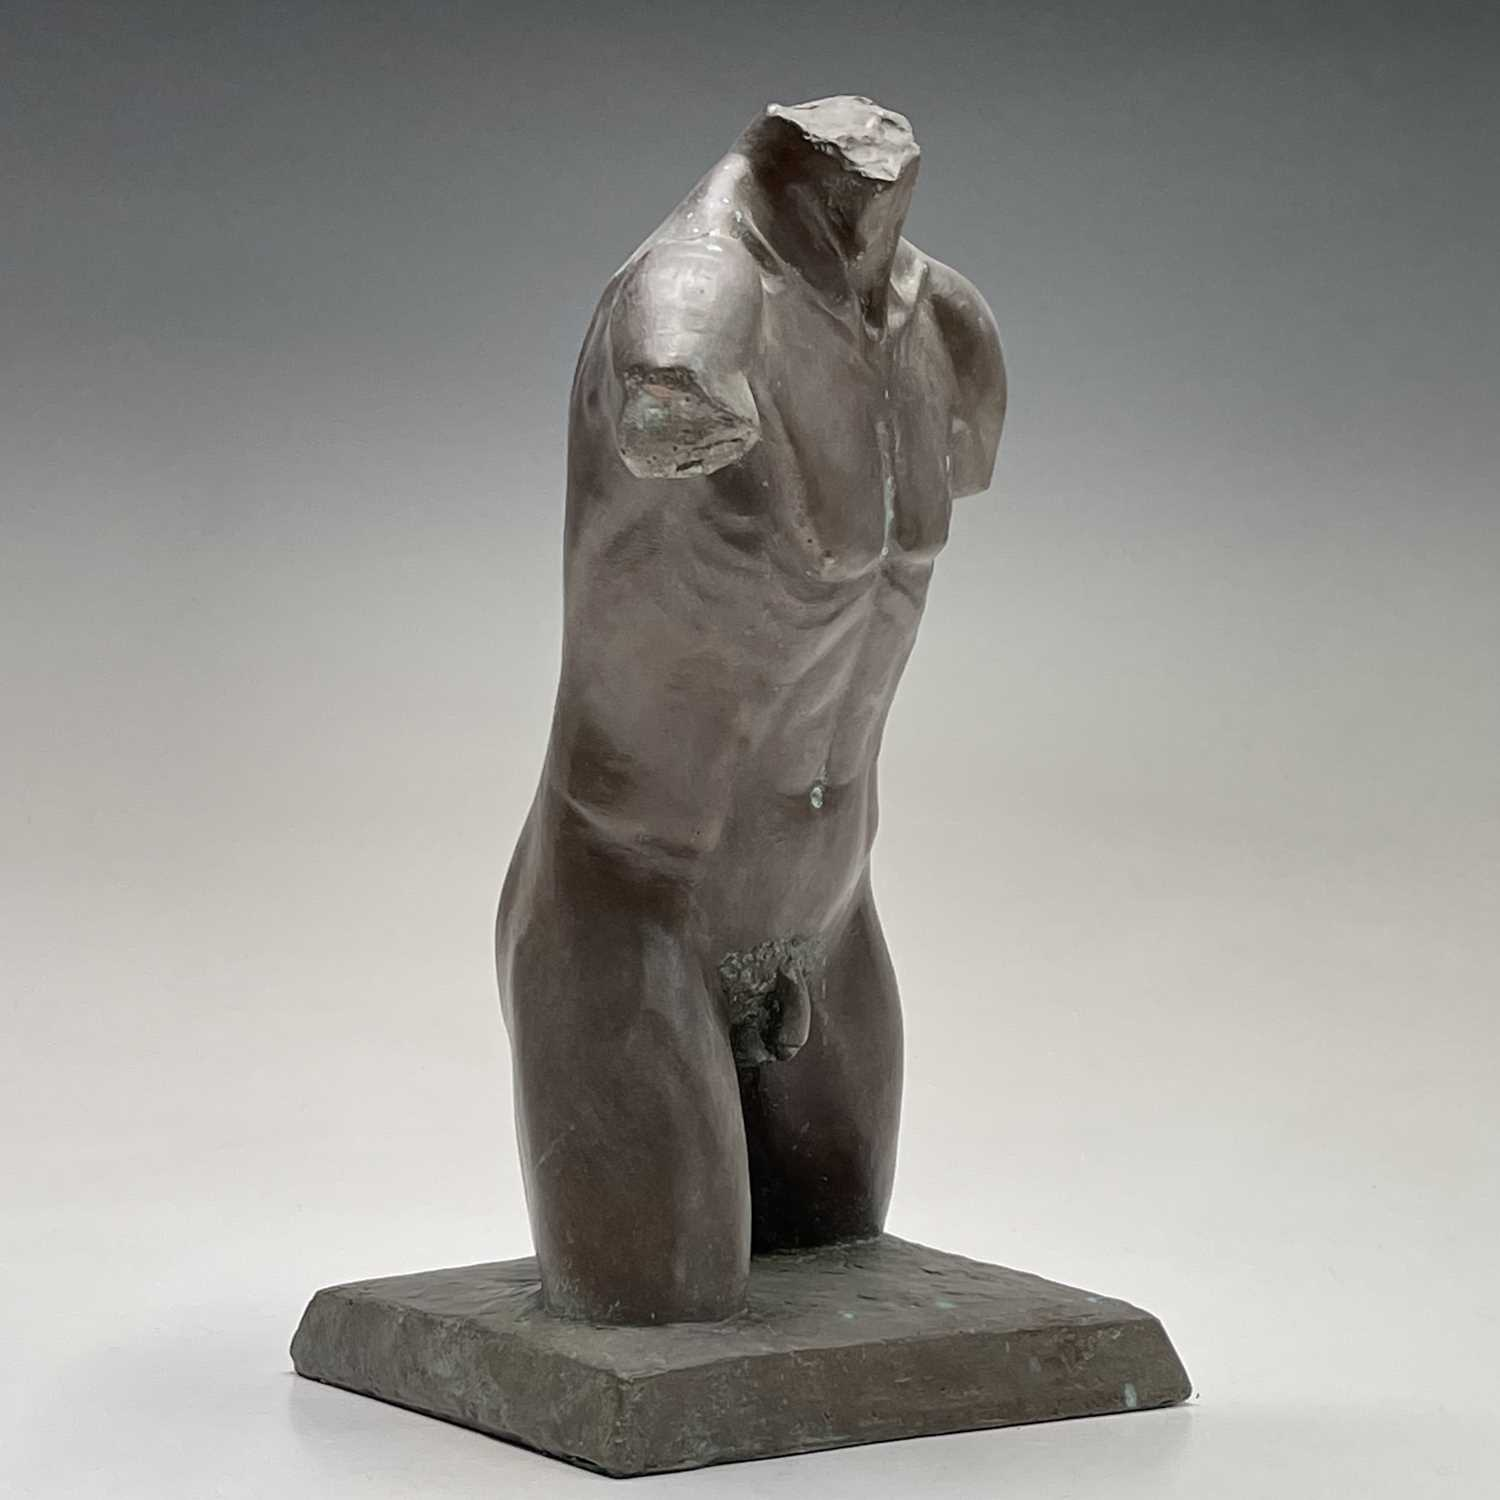 Alec WILES (1924)Males Torso Bronzed resin sculpture Signed and dated 1995Height 27cm - Image 4 of 10